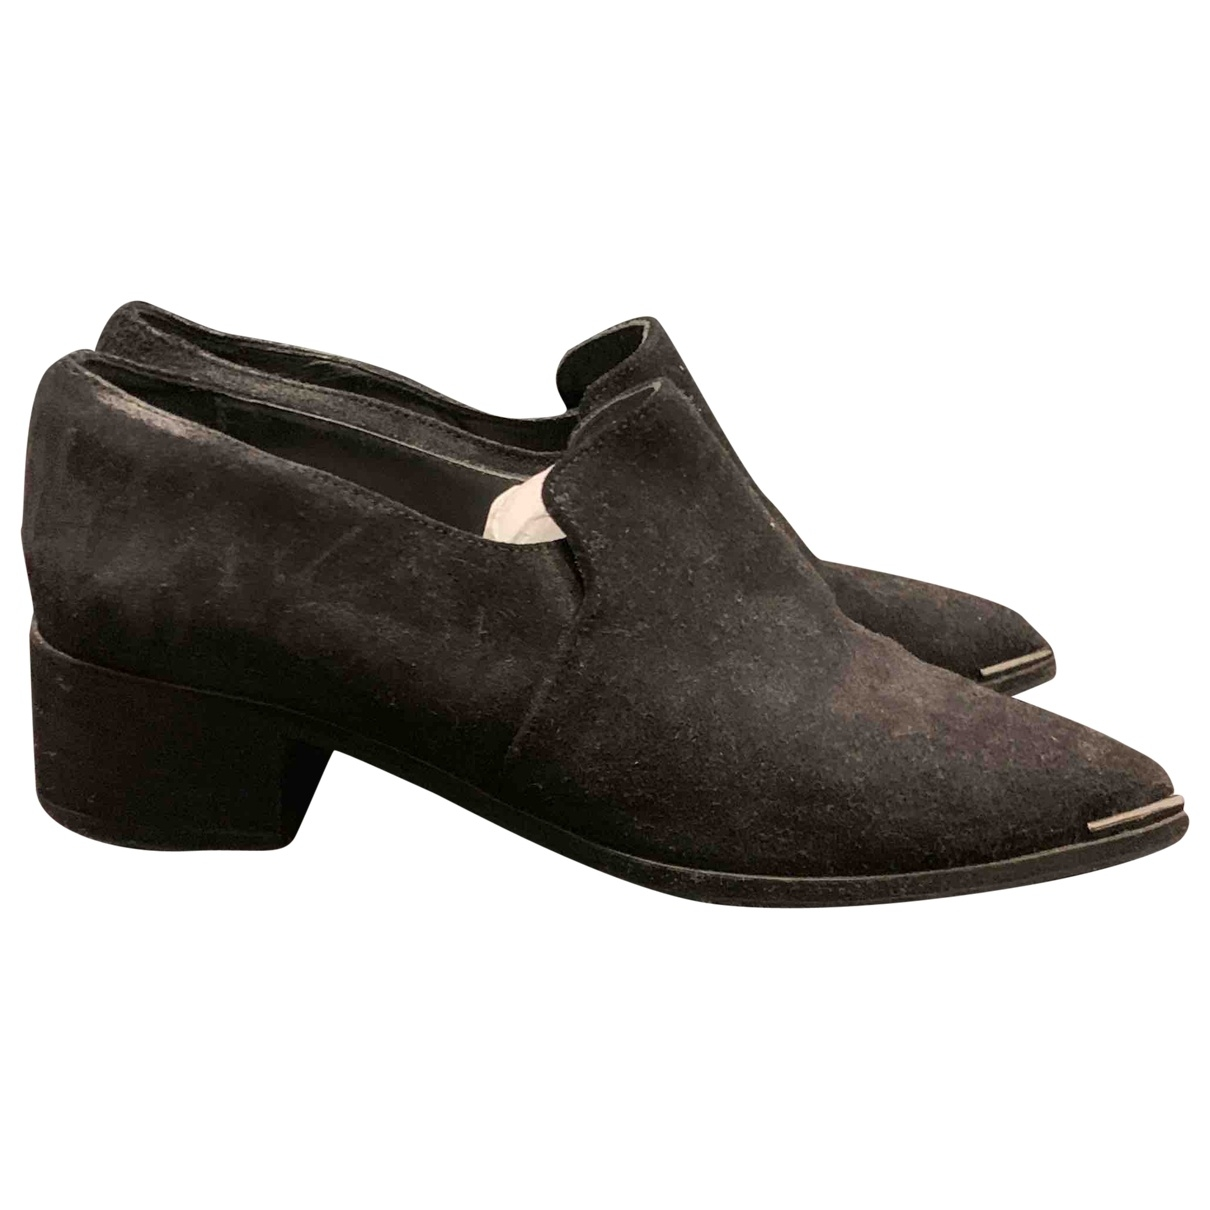 Acne Studios \N Black Suede Flats for Women 37 EU